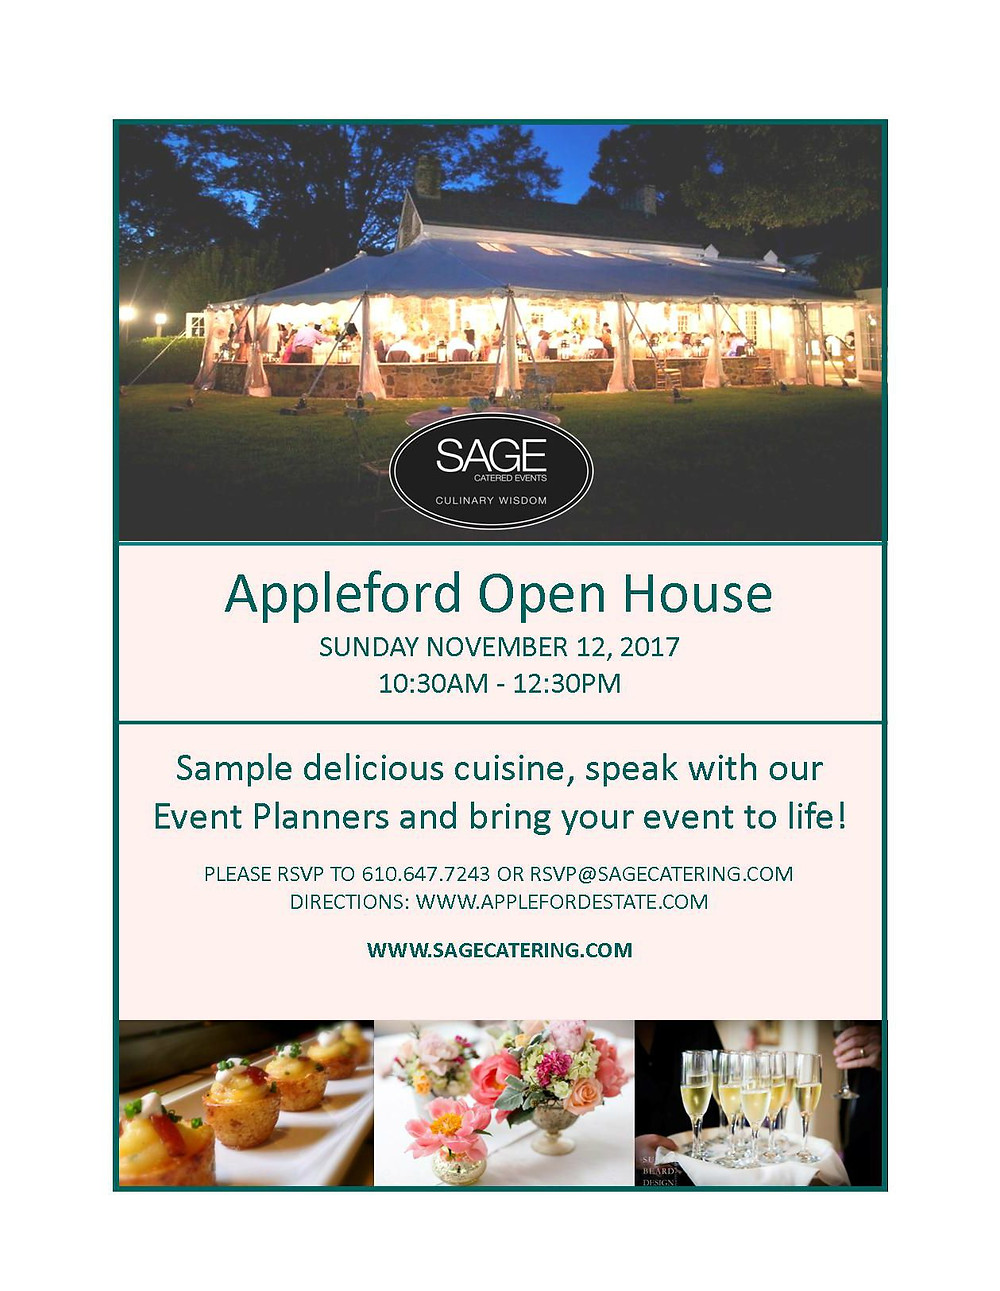 JOIN SAGE FOR OUR UPCOMING OPEN HOUSE AT APPLEFORD ESTATE